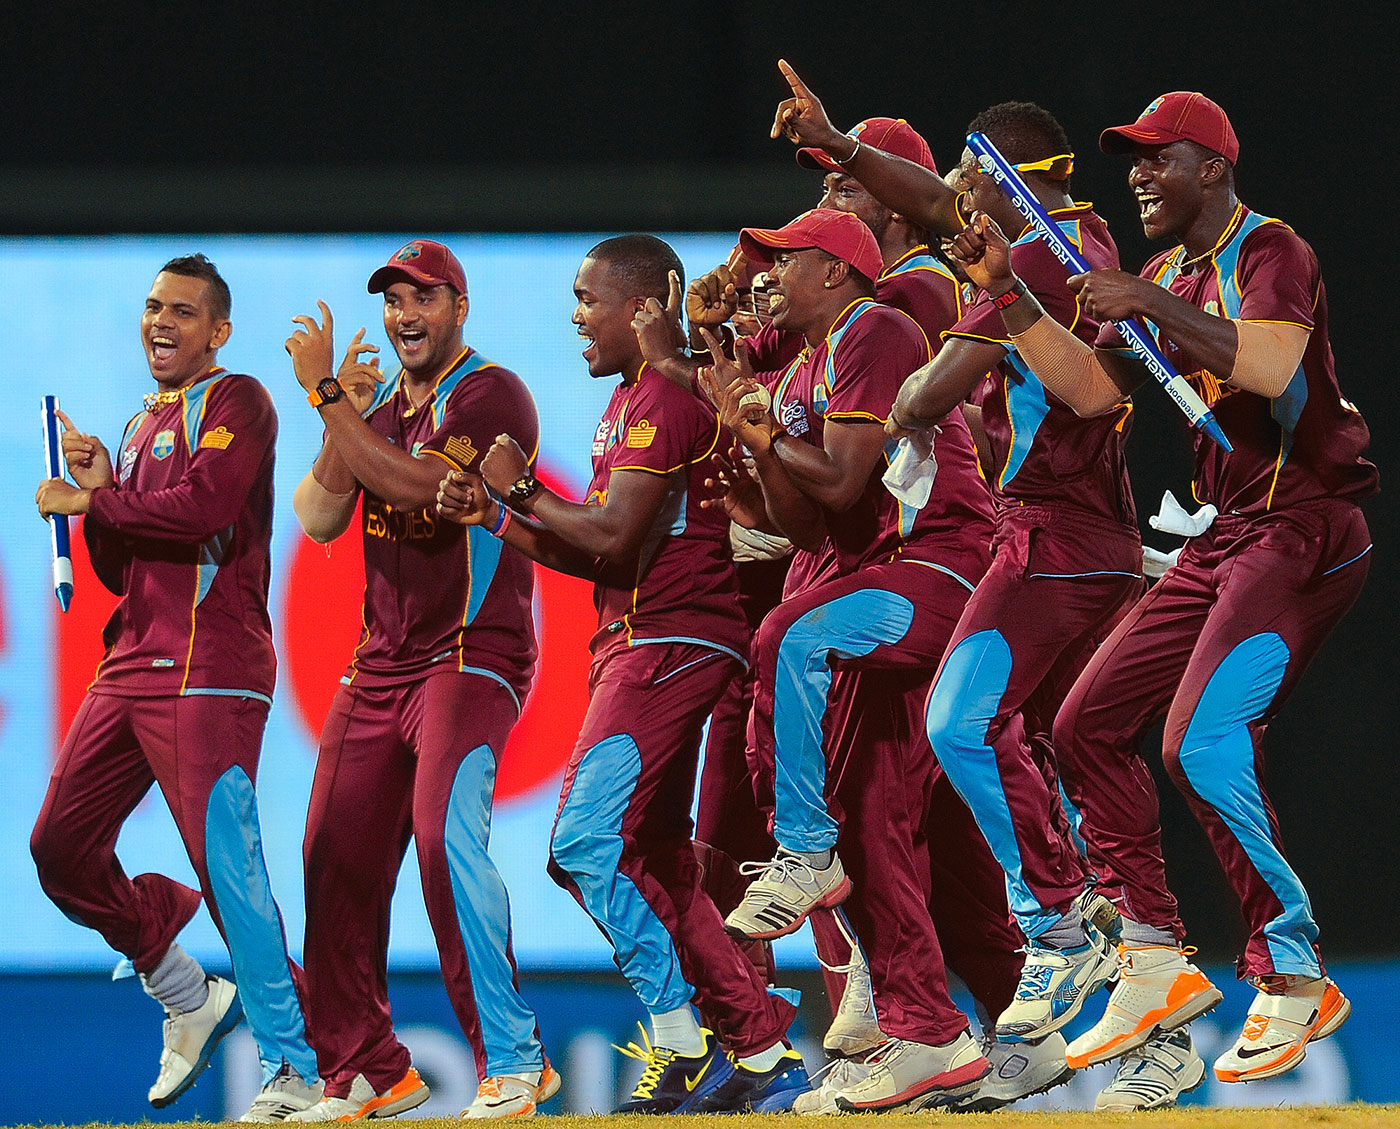 West Indies celebrate their victory, 'Gangnam' style, Sri Lanka v West Indies, final, World Twenty20, Colombo, October 7, 2012